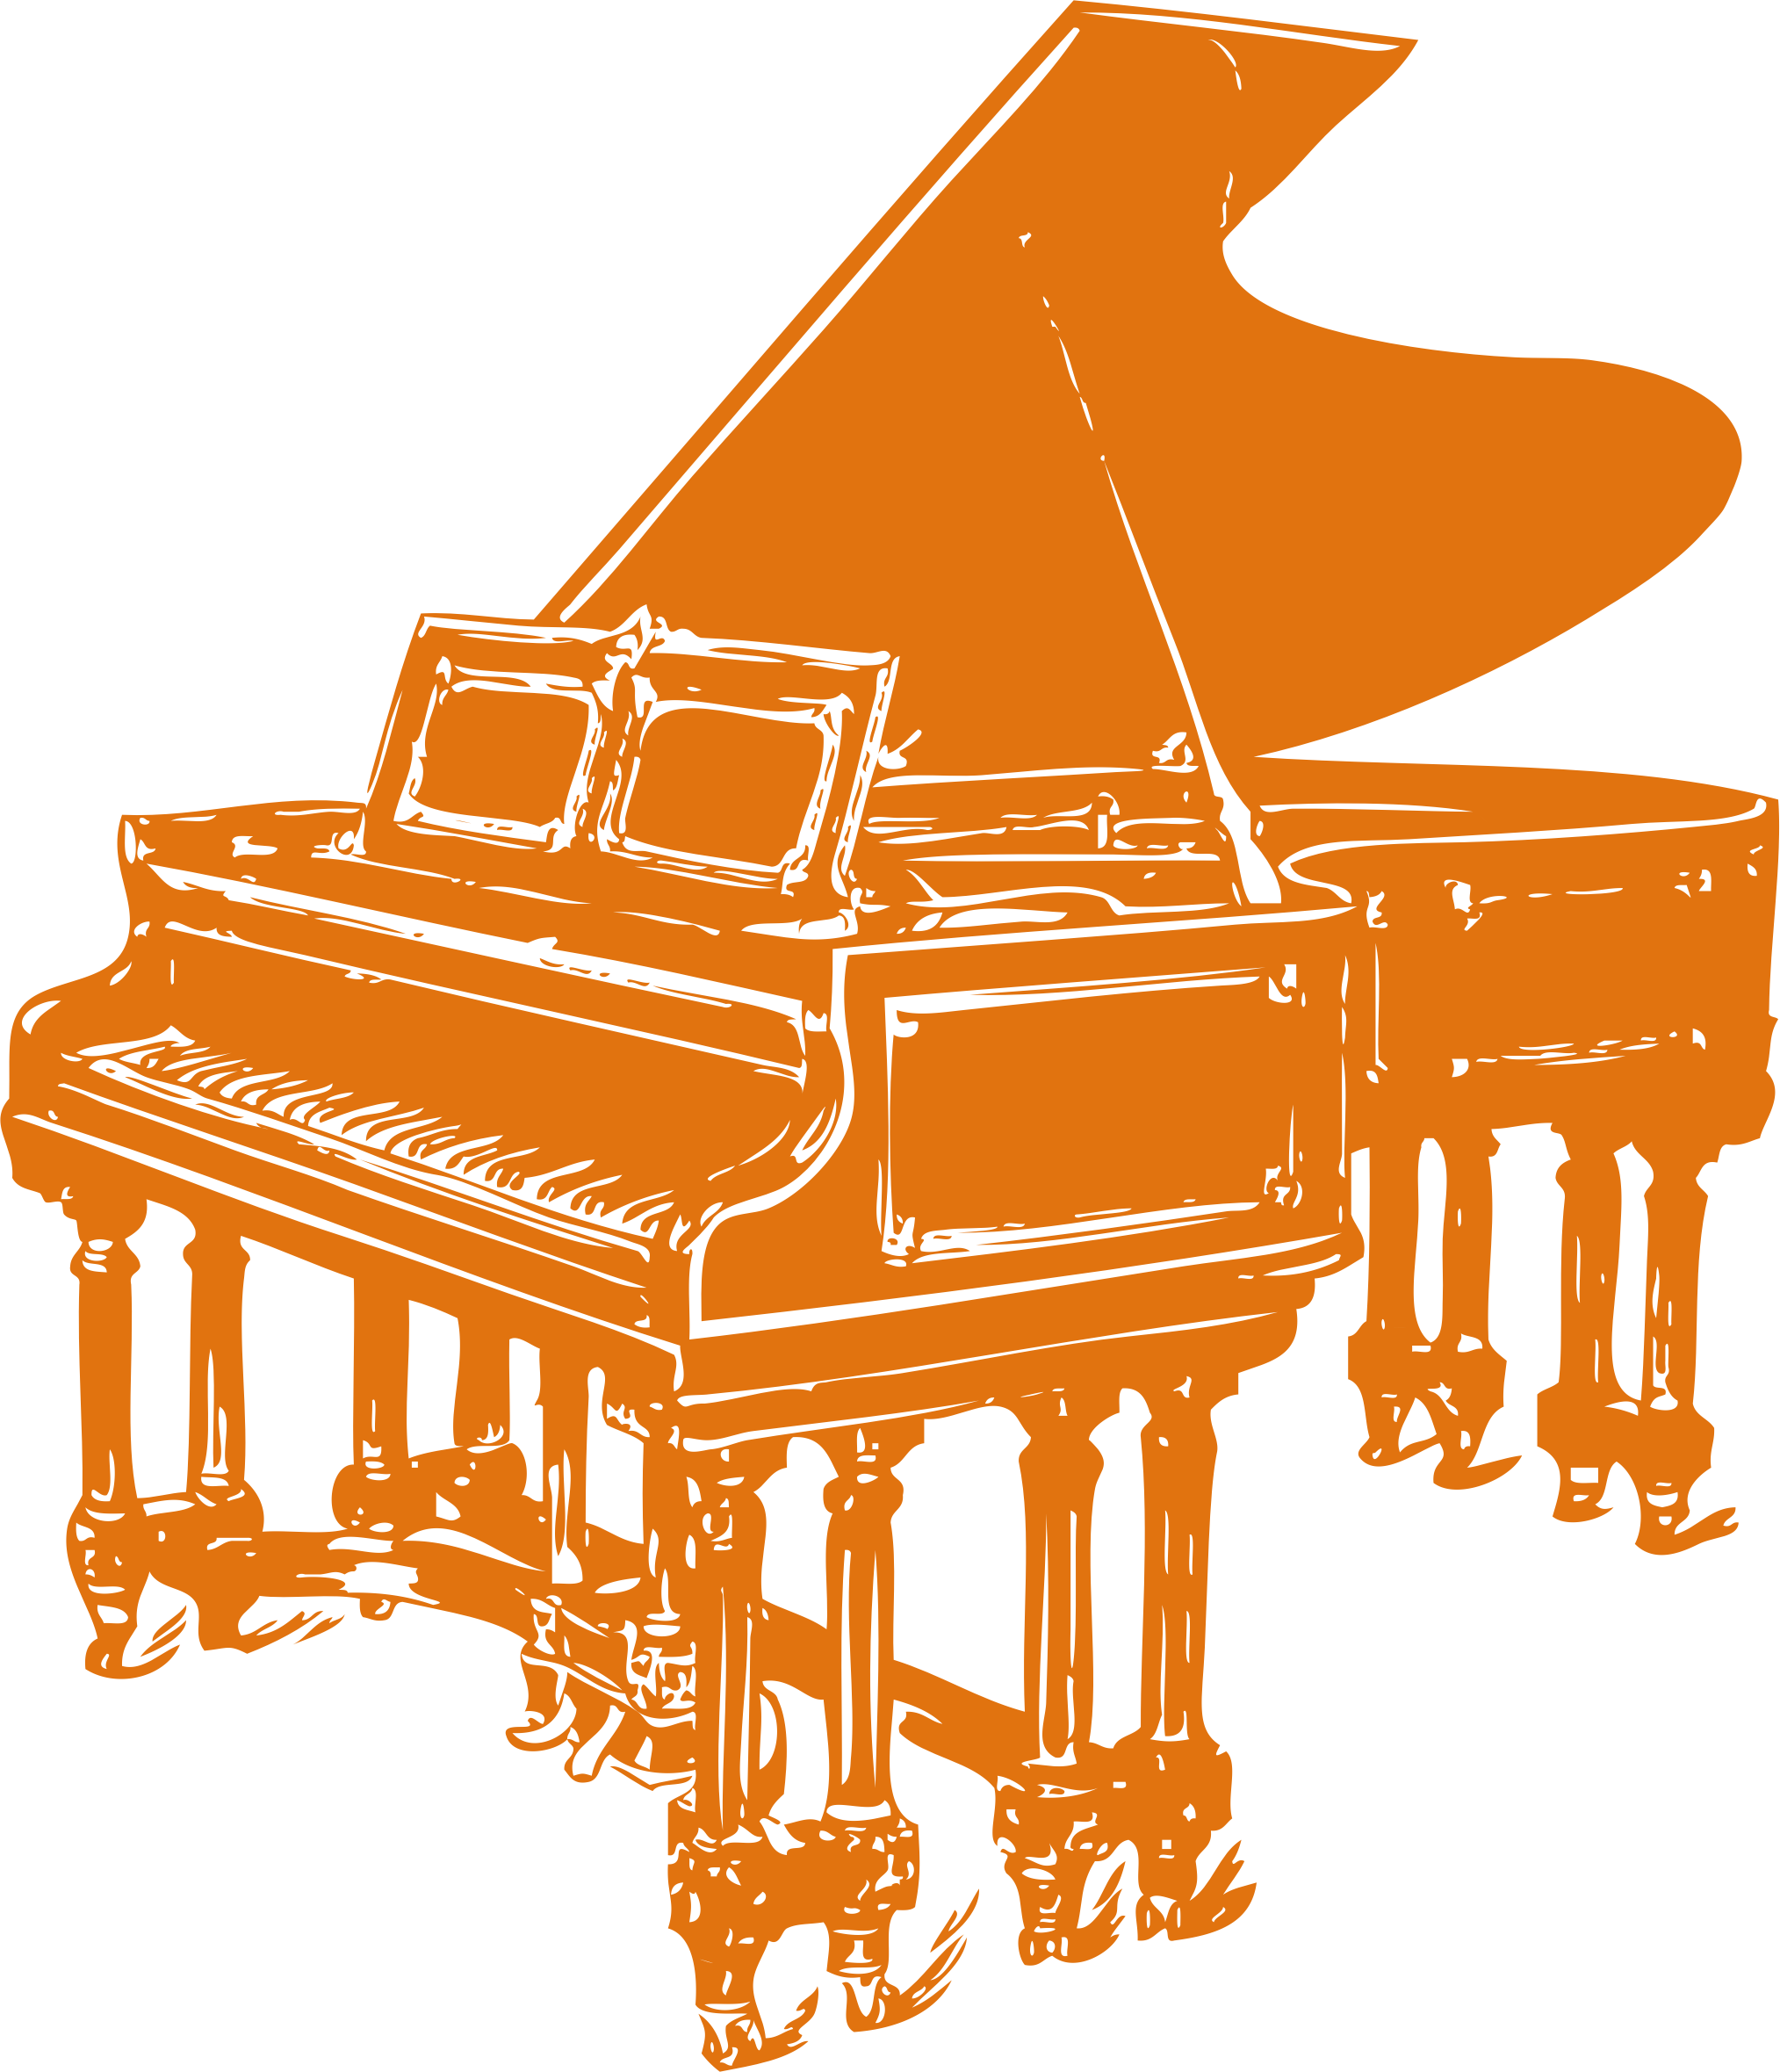 Clipart piano side view. Yc music malaysia sdn